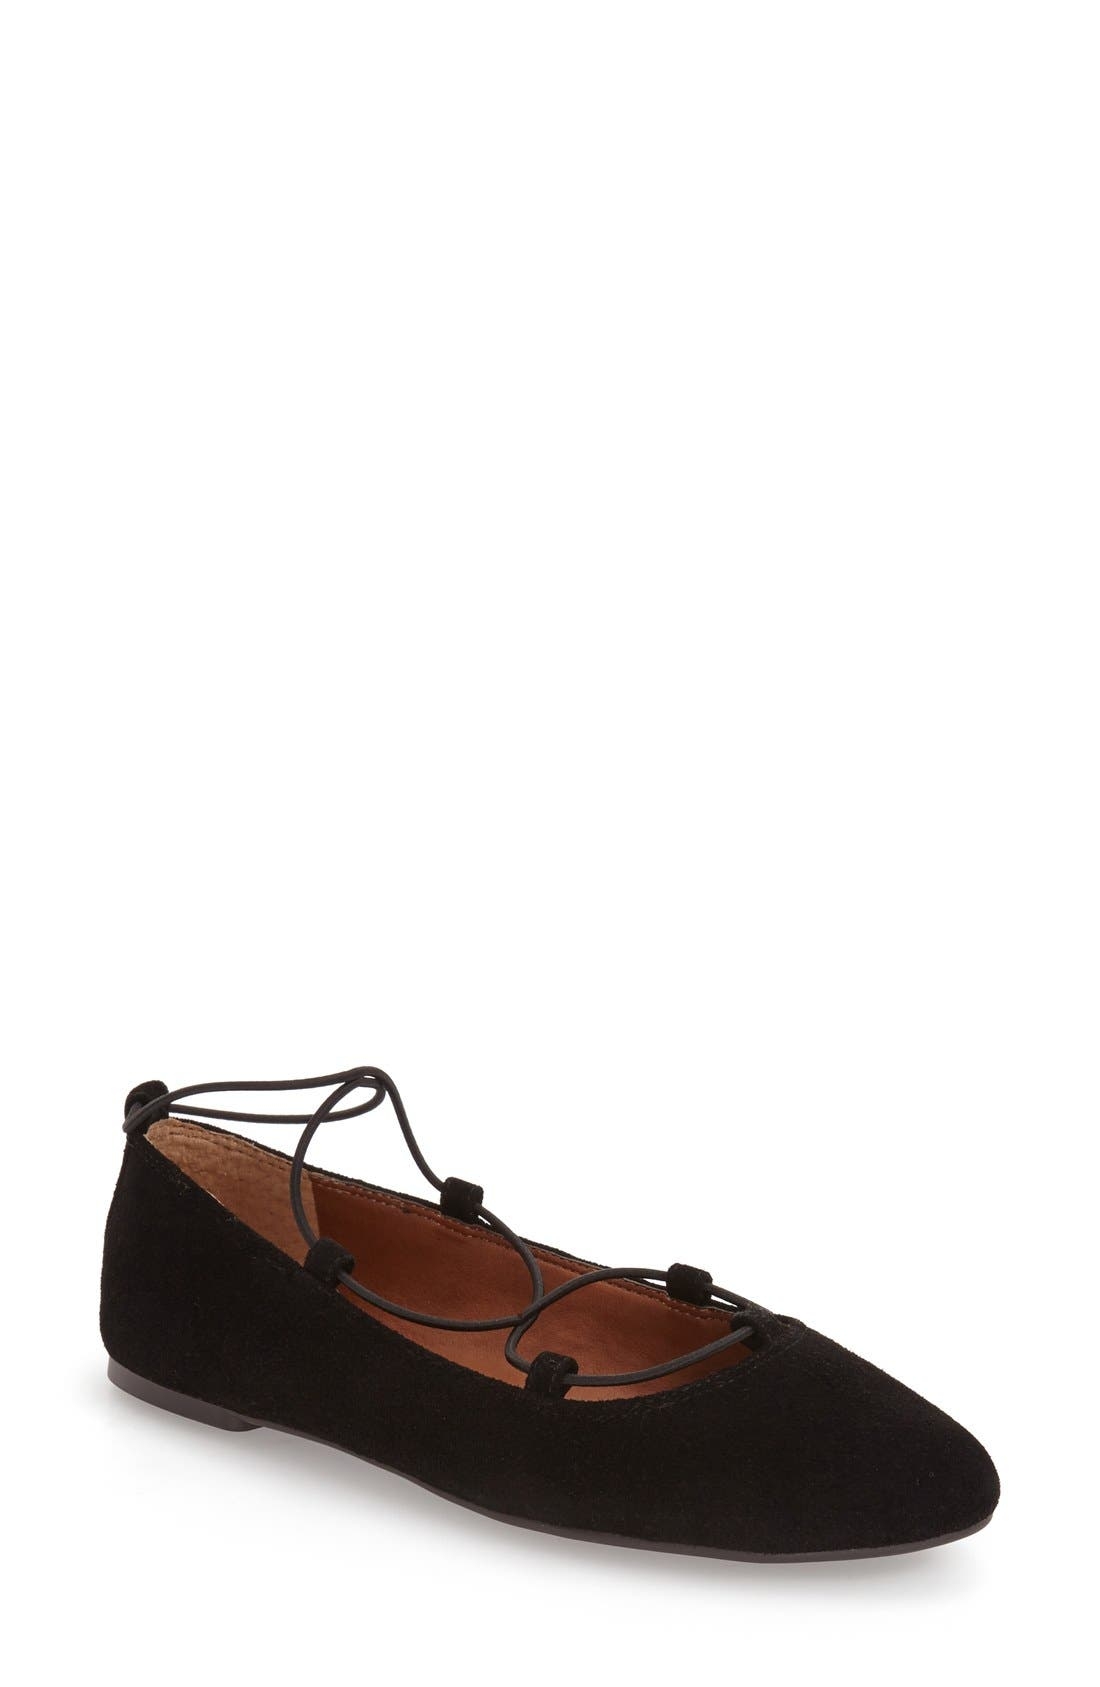 'Aviee' Lace-Up Flat,                             Main thumbnail 1, color,